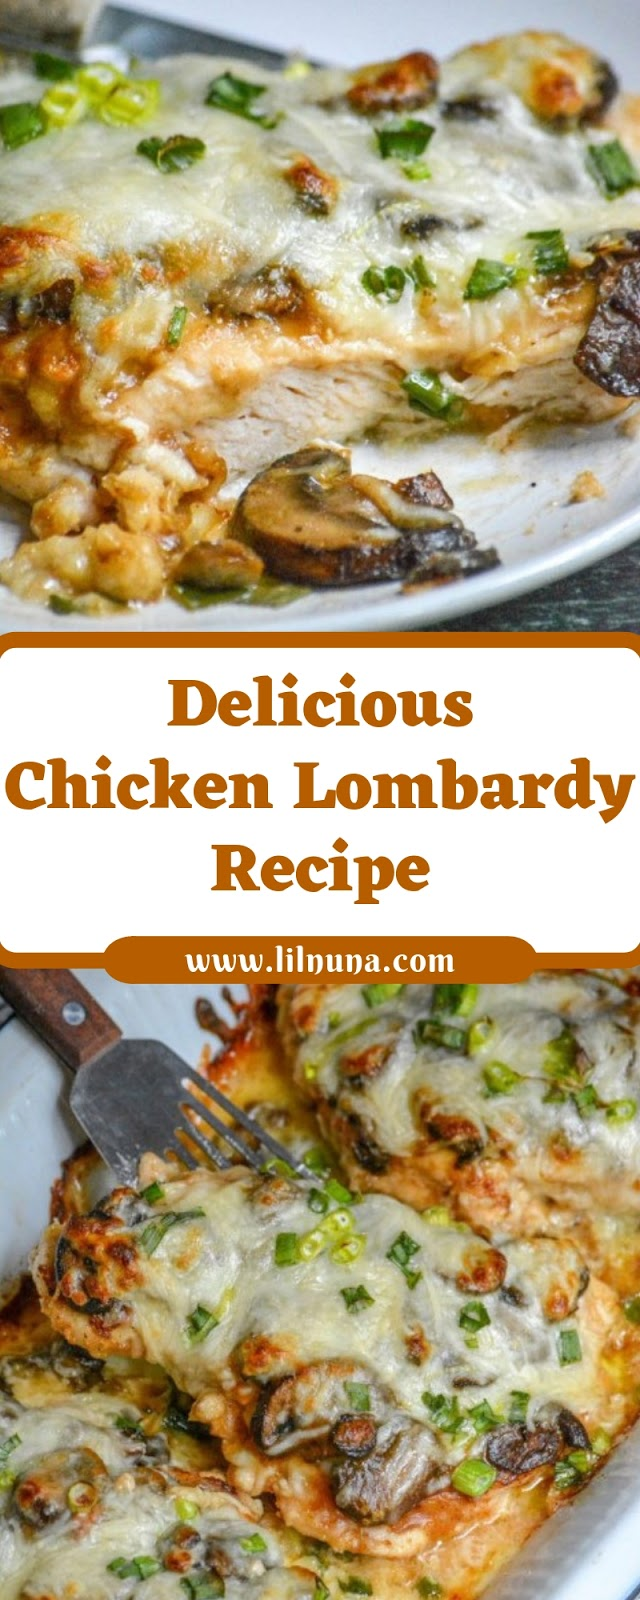 Delicious Chicken Lombardy Recipe